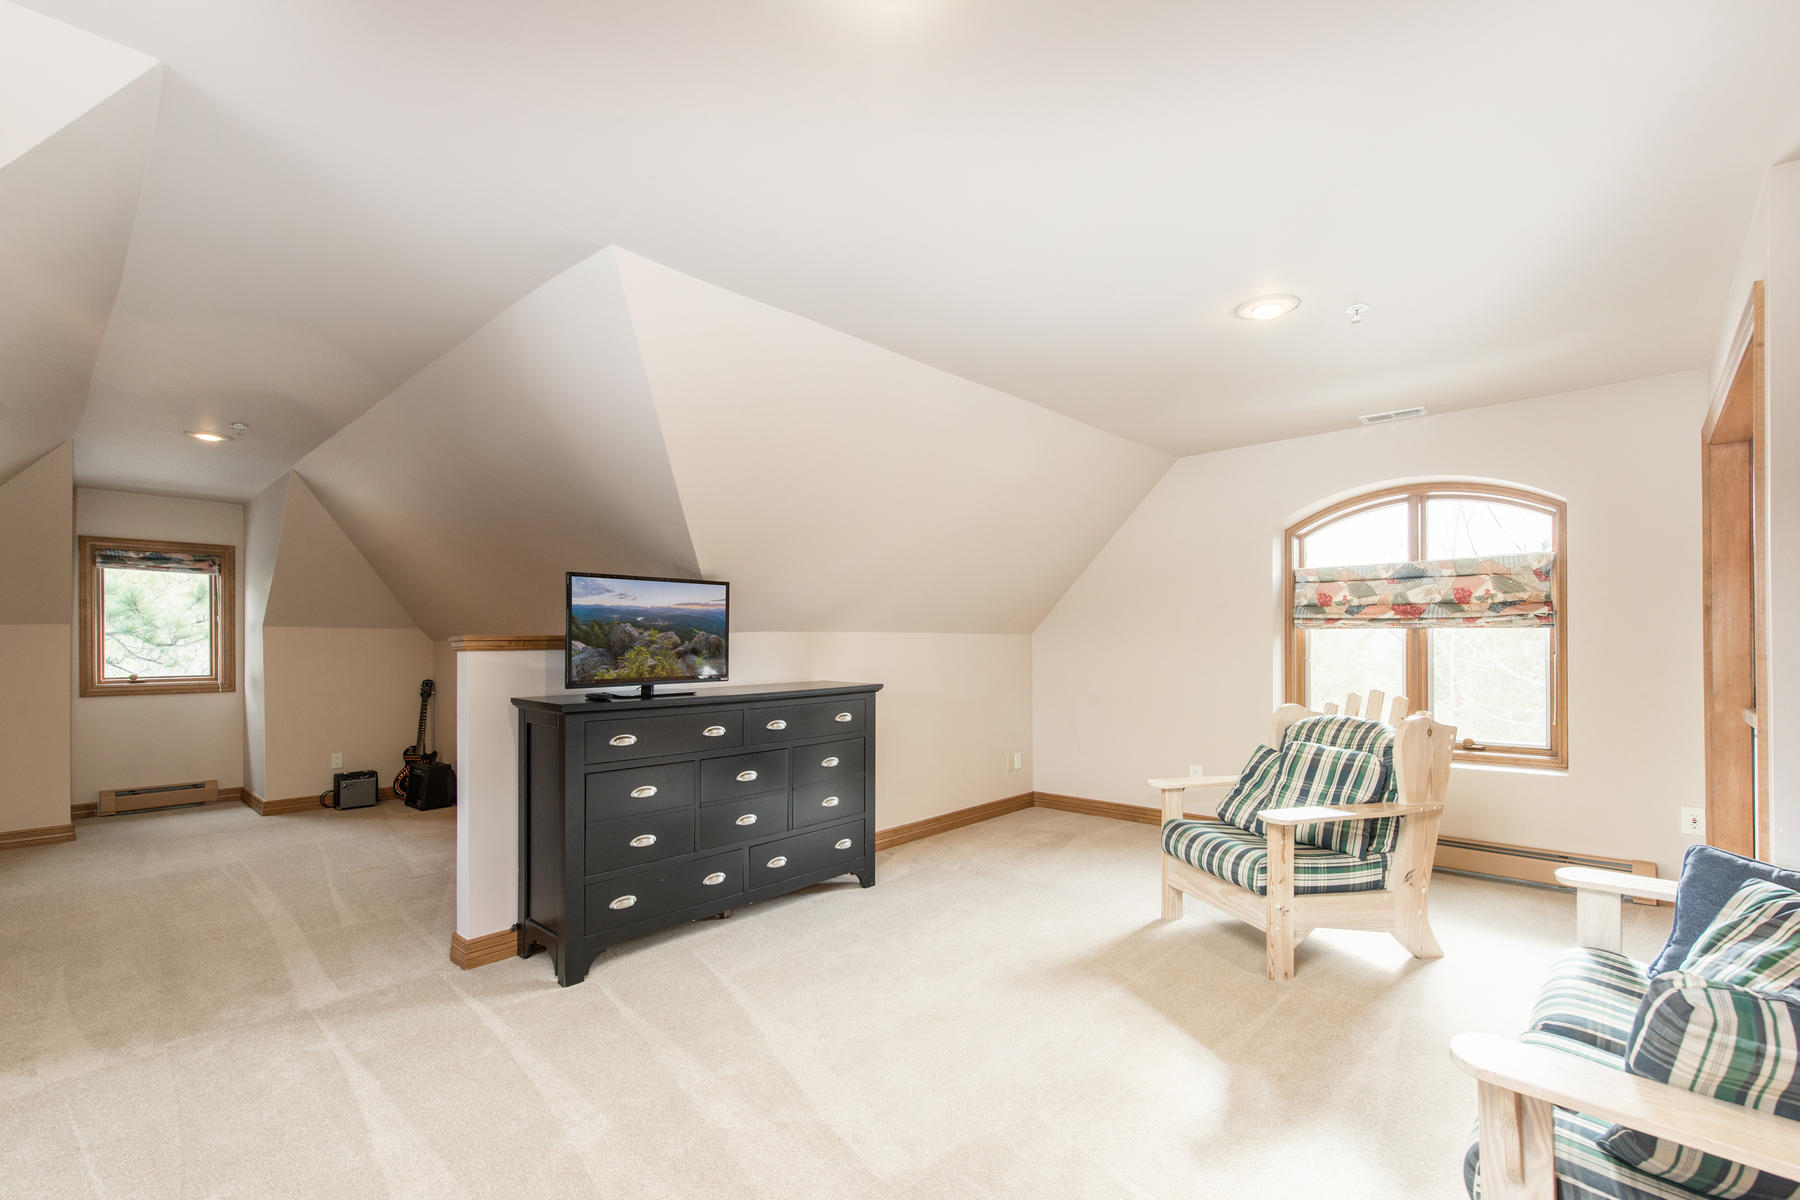 """Additional photo for property listing at Every once in while, a property defines """"Home"""" and 143 Capulin is just that. 143 Capulin Pl Castle Rock, Colorado 80108 United States"""